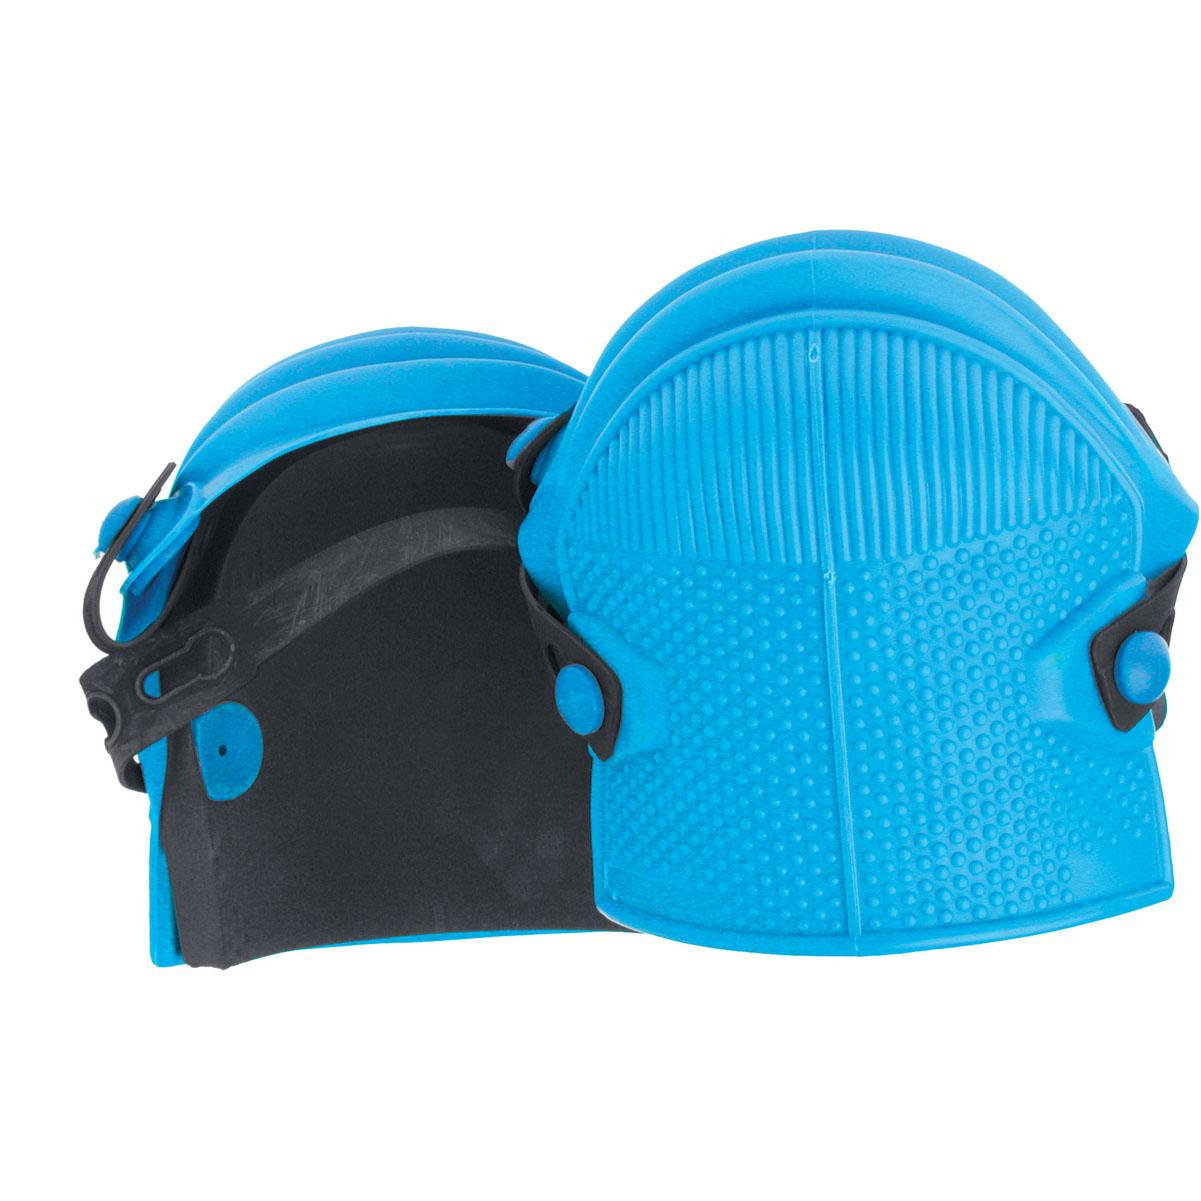 TRADE DELUXE KNEE PADS